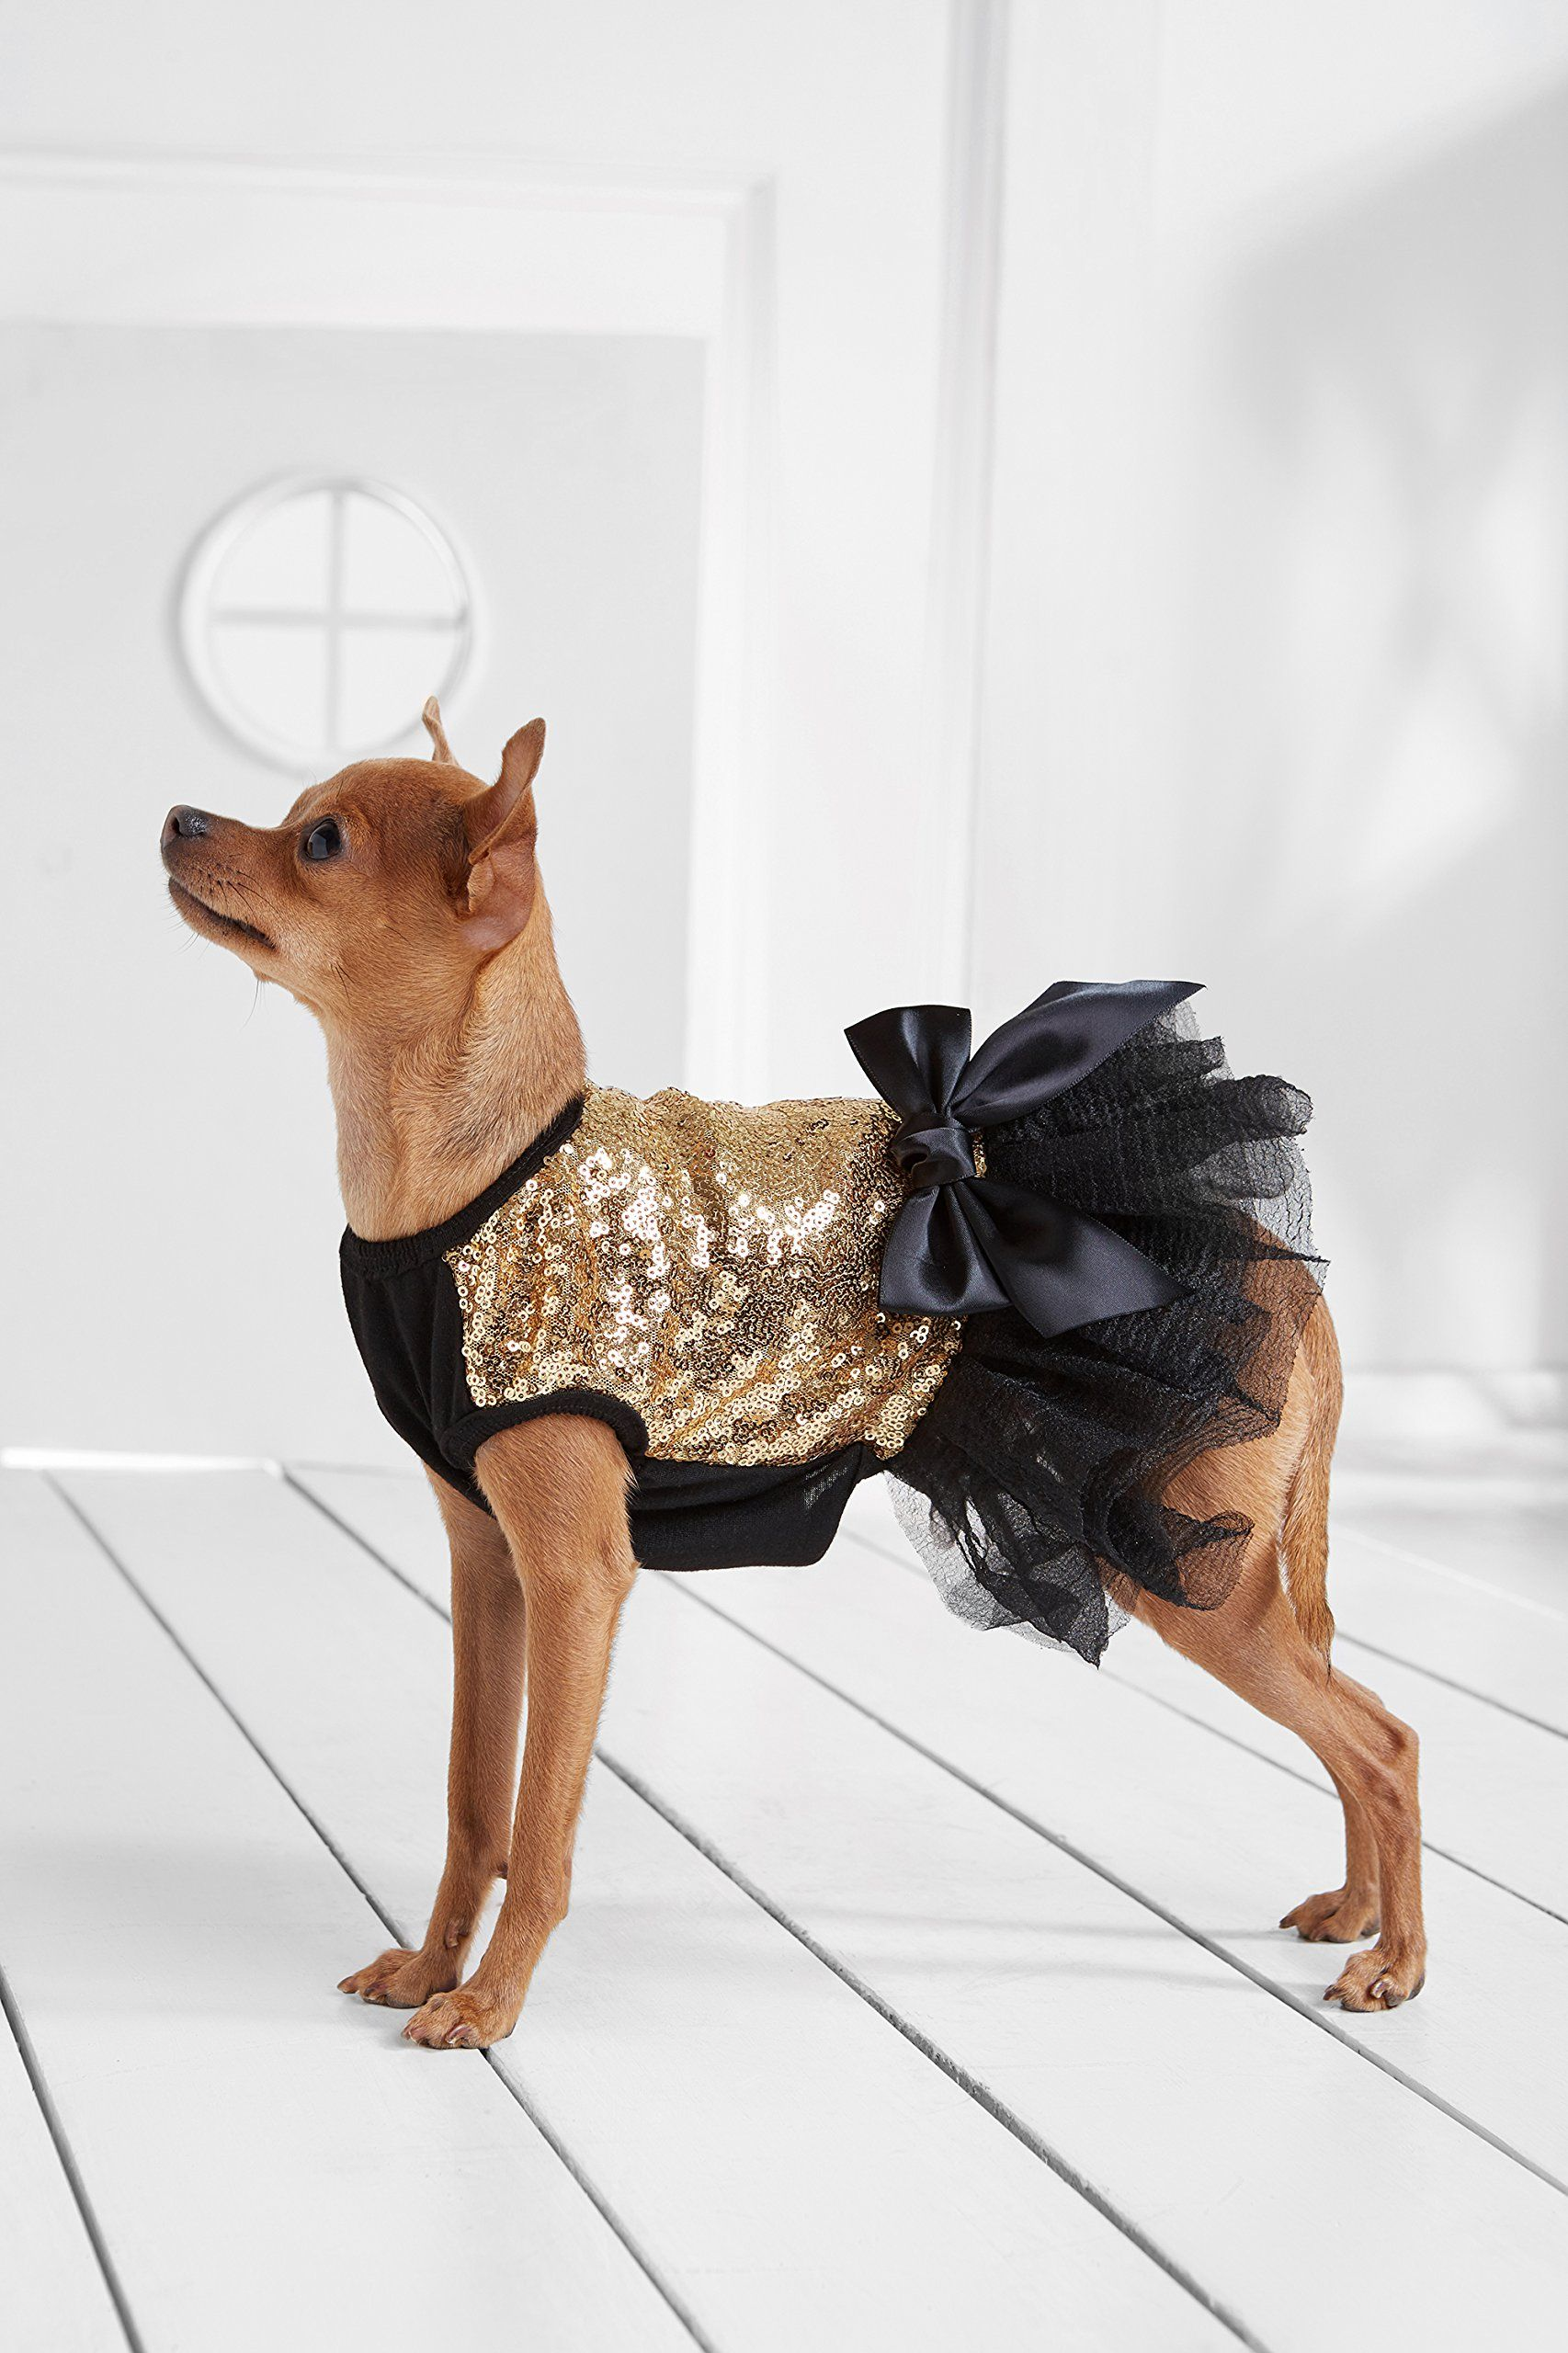 SELMAI Small Dog Party Dress Formal Evening Wedding Tutu Shirts Sundress Satin Bowknot Tiered Lace Sweet Fairlady Pet Puppy Cat Doggie Clothes Apparel Outfits Blue XS